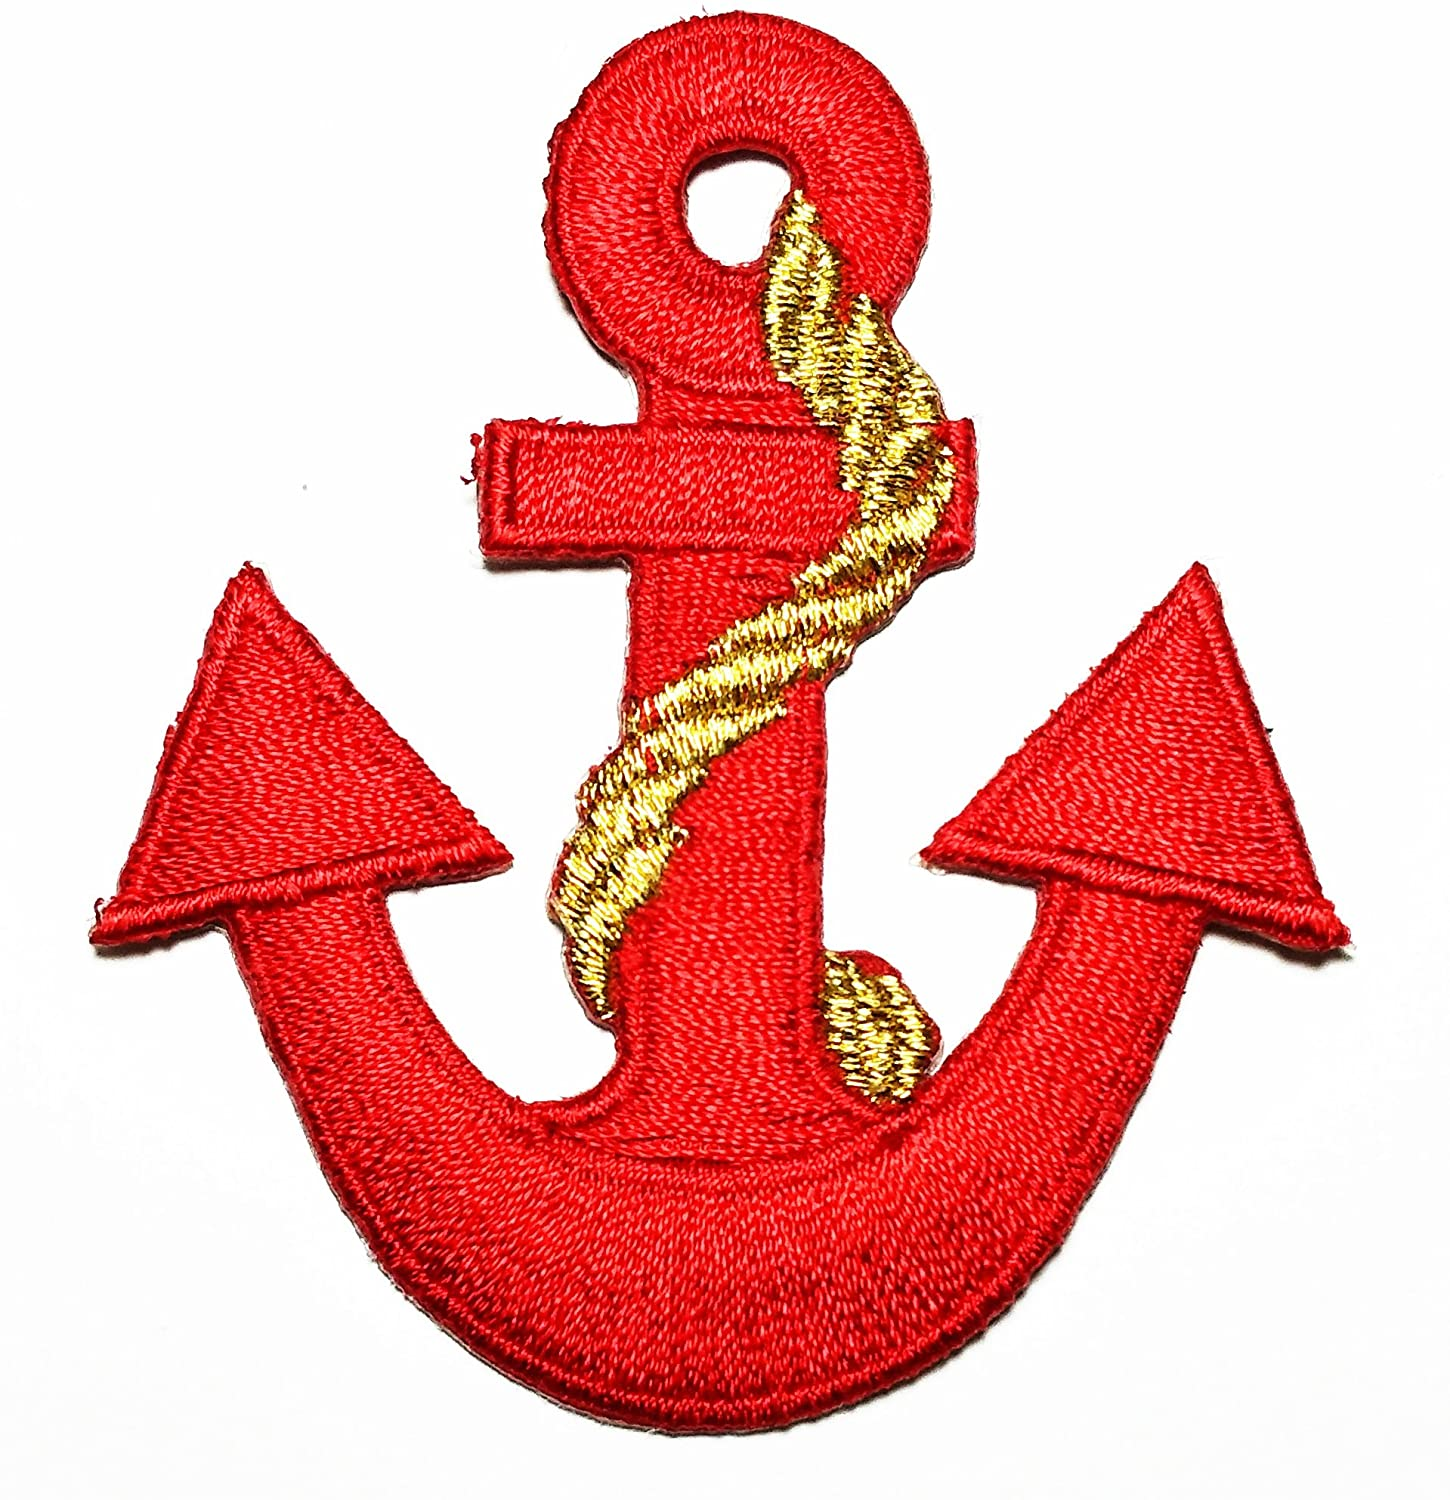 HHO Anchor navy biker tattoo retro ship boat sea sew Red embroidered Patch Embroidered DIY Patches Cute Applique Sew Iron on Kids Craft Patch for Bags Jackets Jeans Clothes